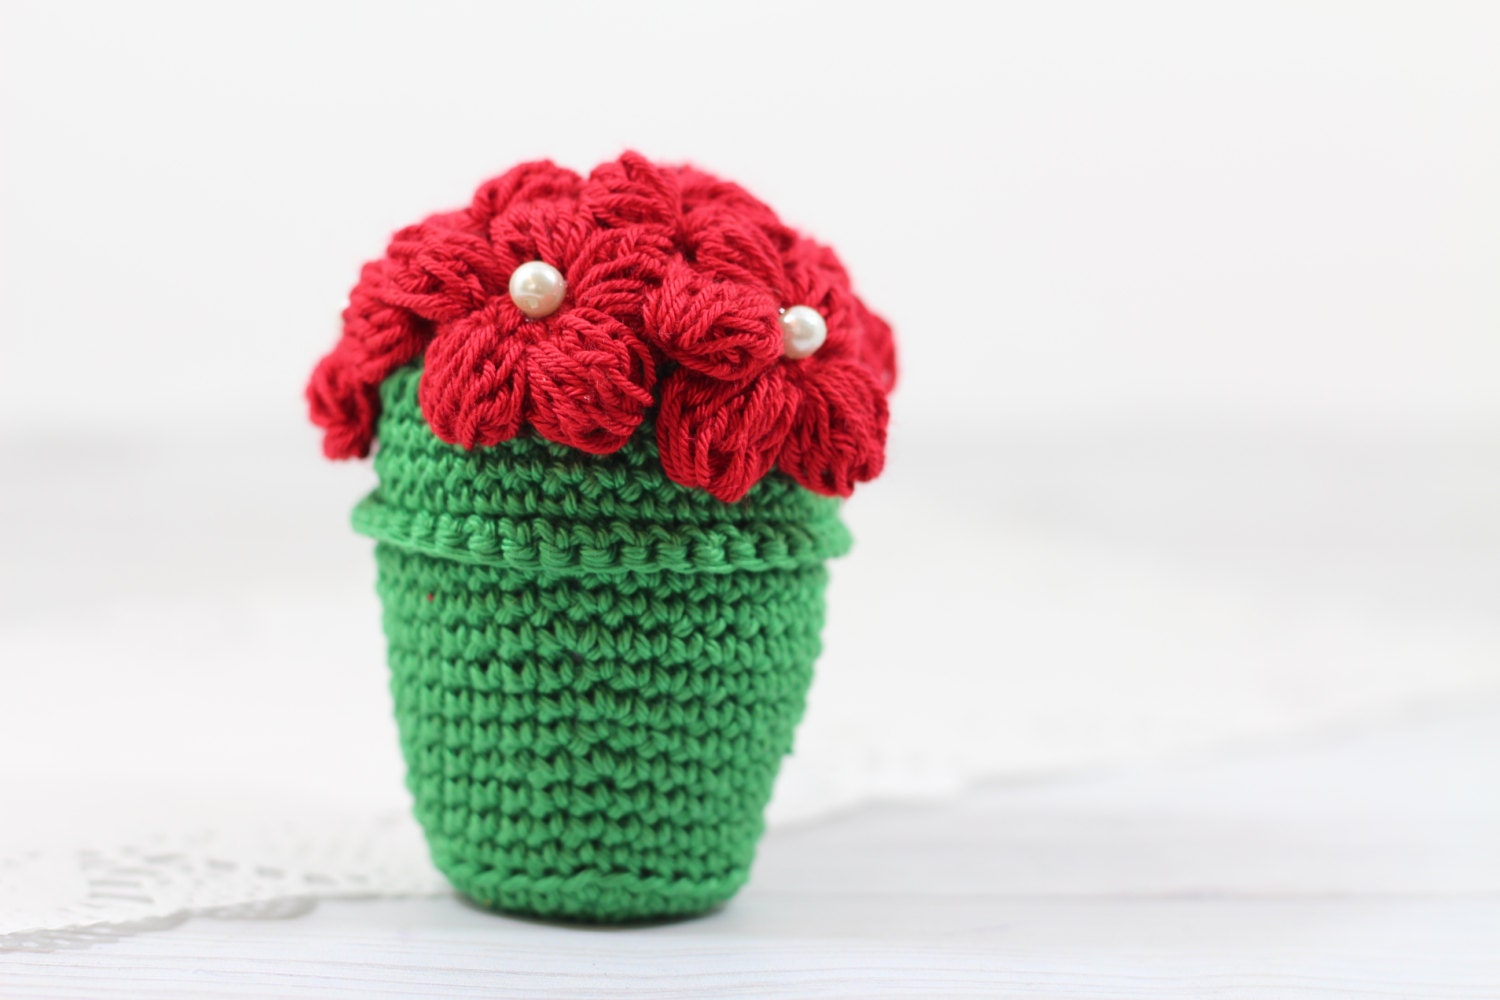 Amigurumi Crochet Flowers : Crocheted Flower Pot Tutorial Amigurumi Flower Pot by etty2504